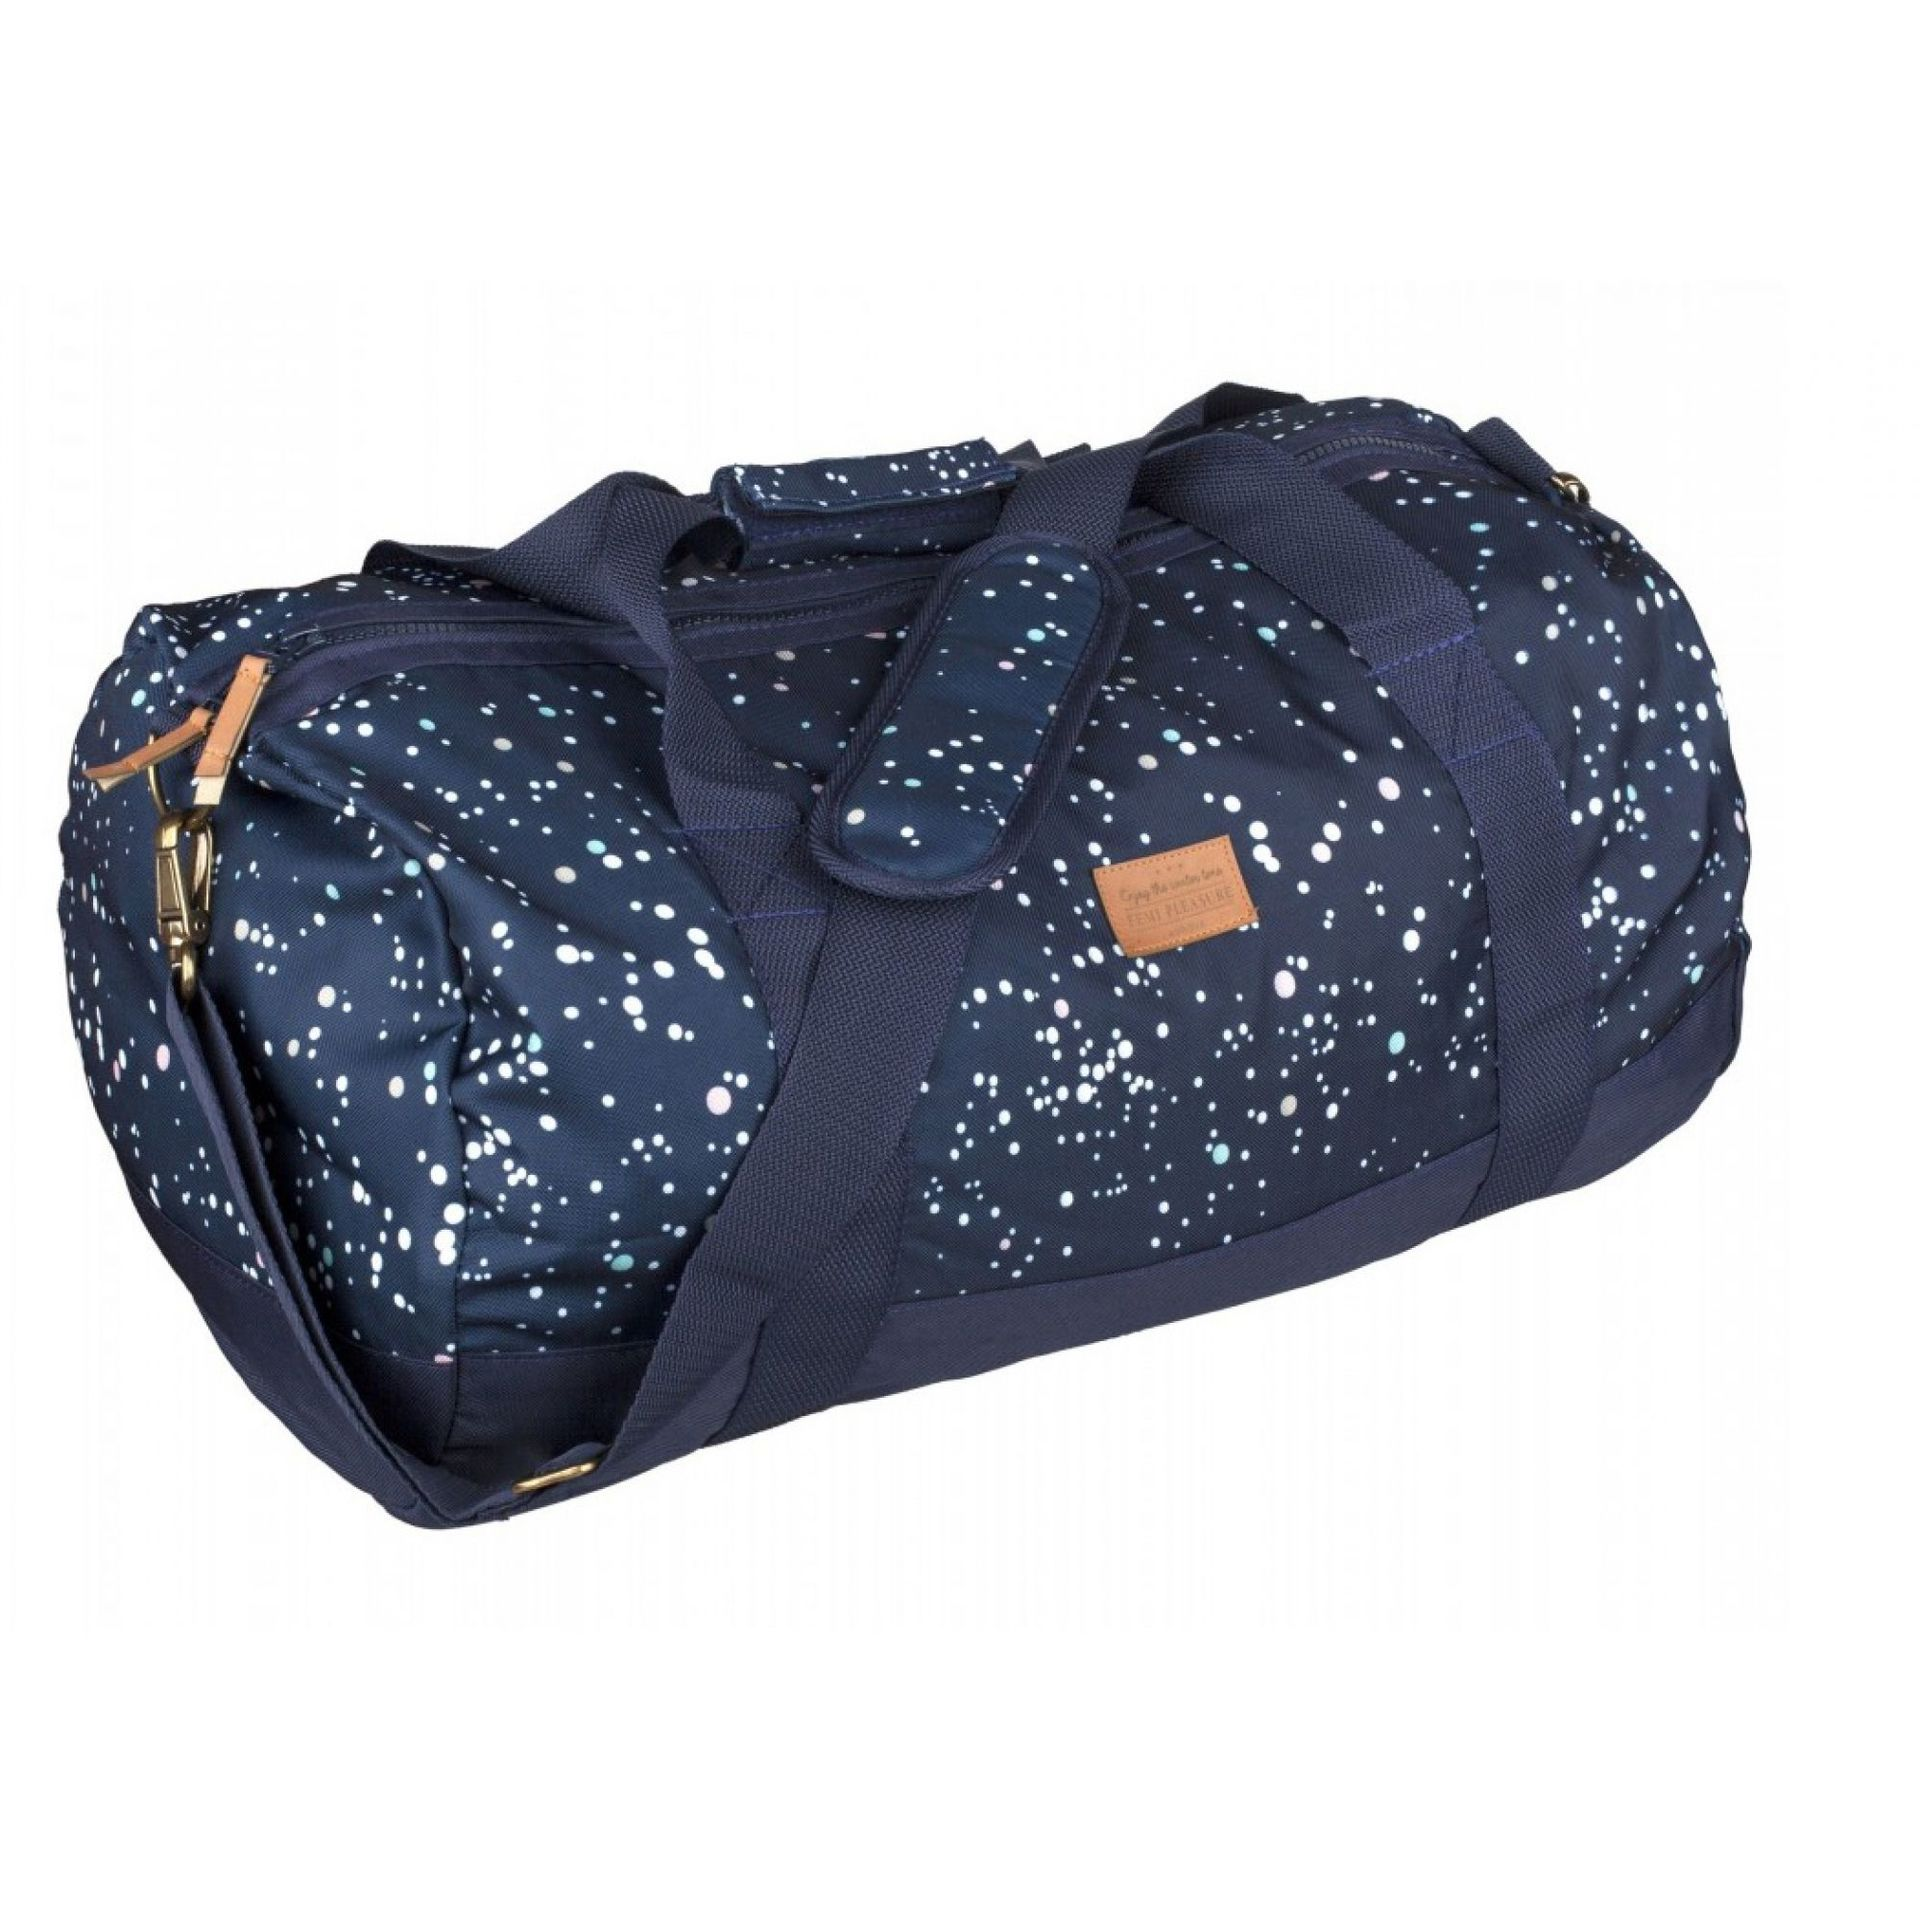 TORBA FEMI PLEASURE HAVEN NIGHT SKY